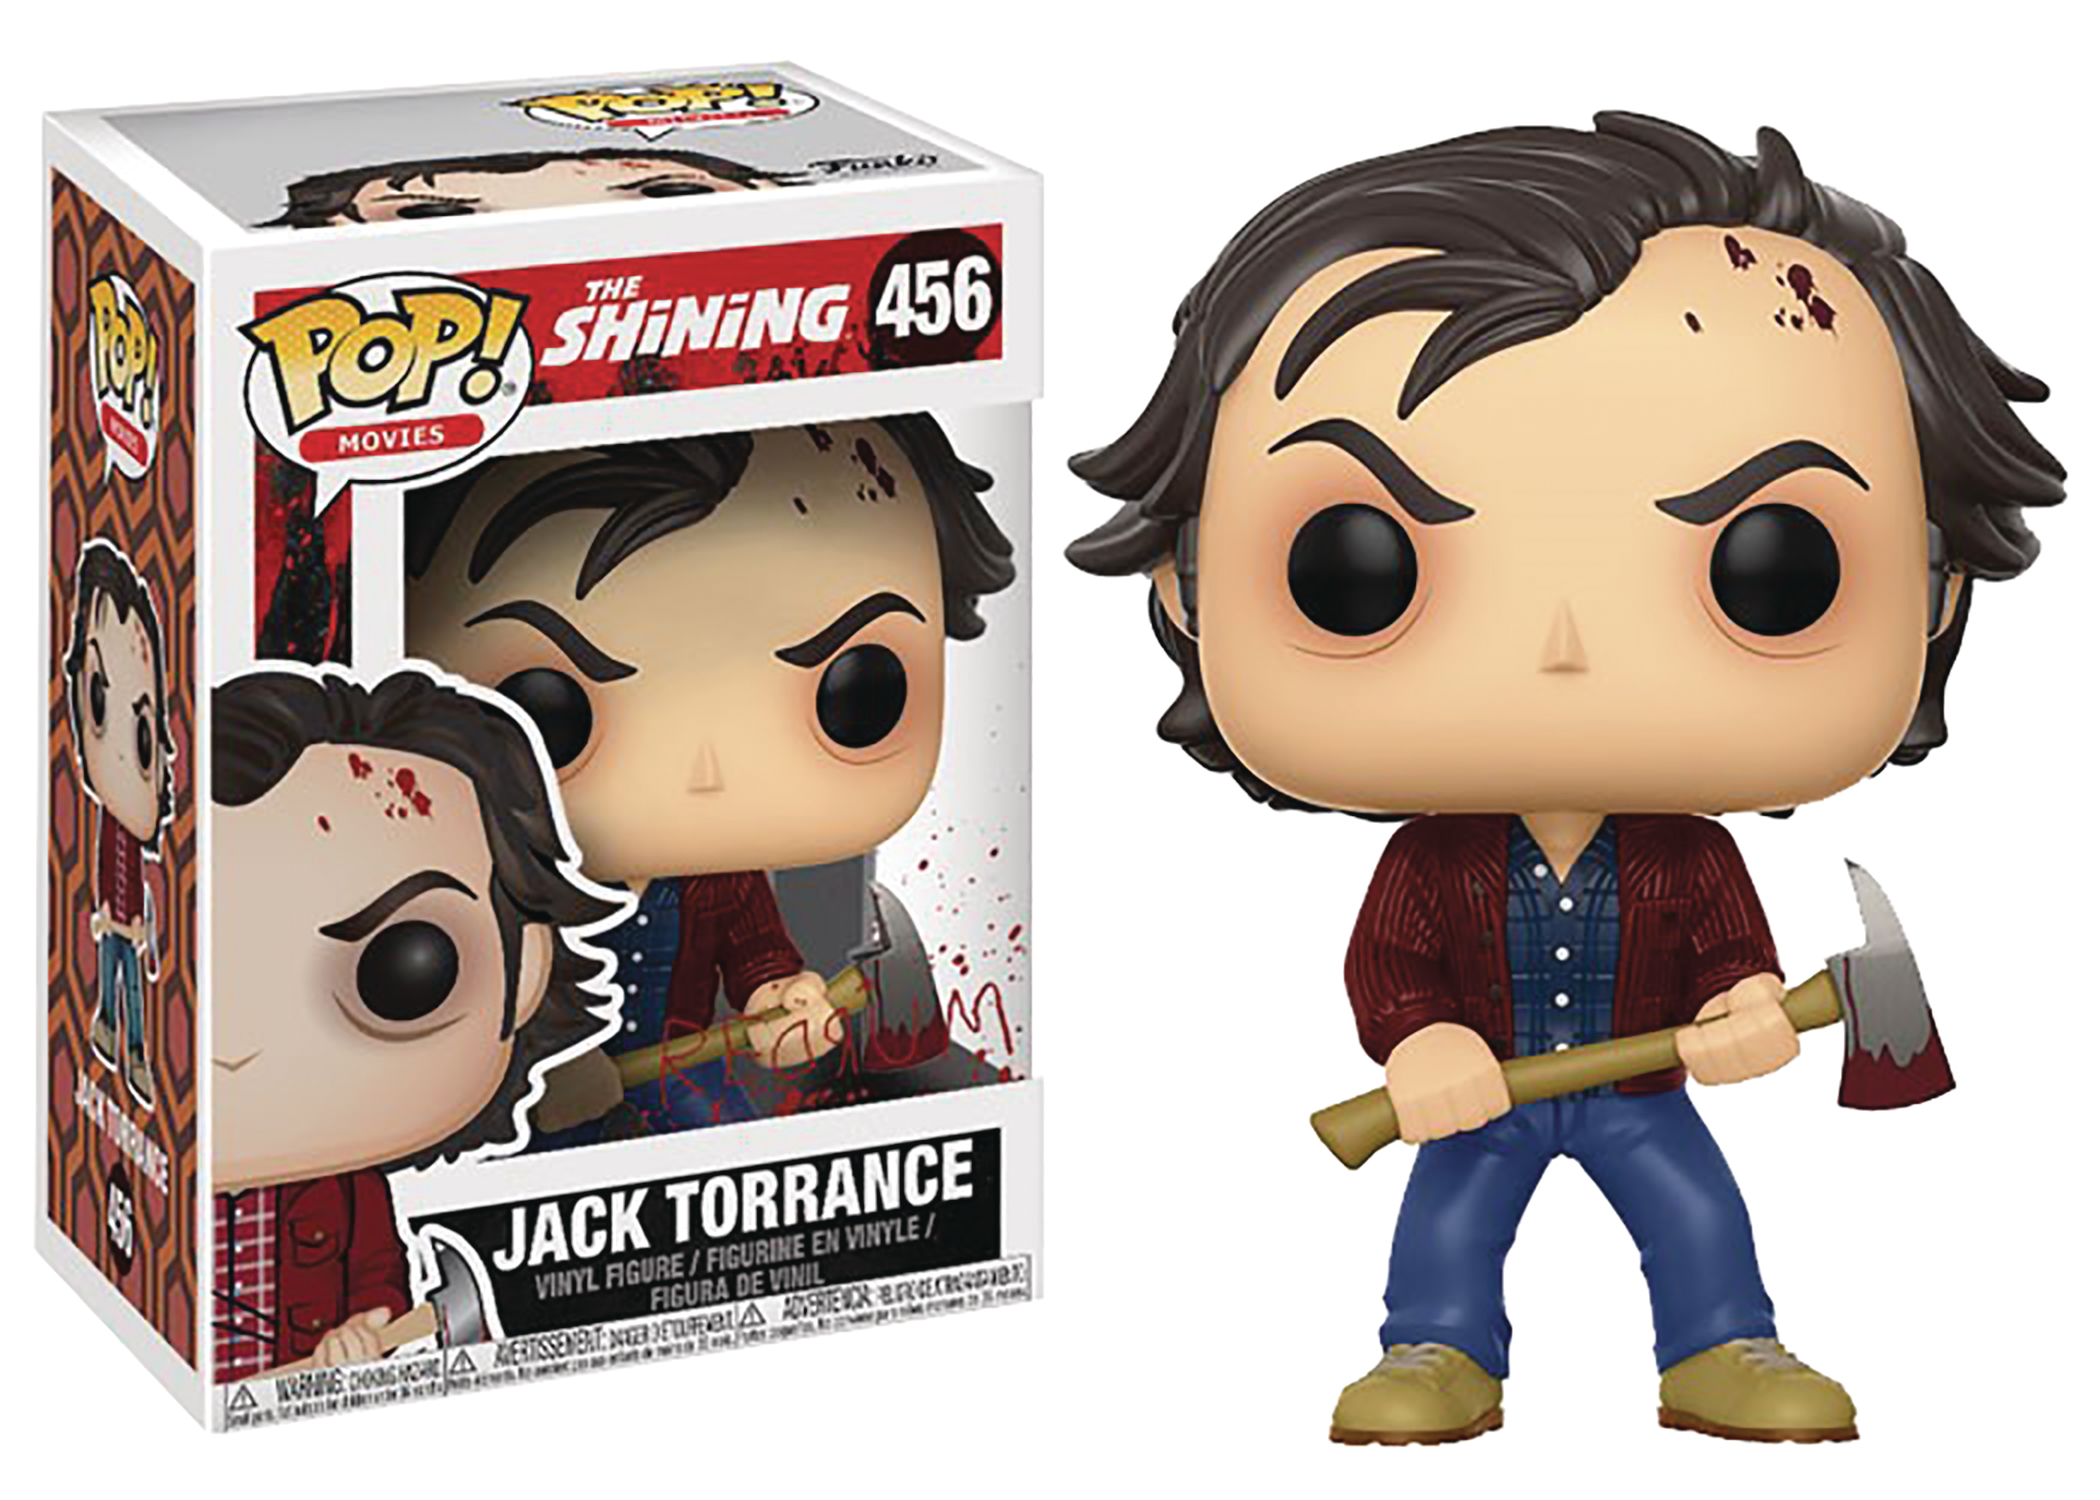 POP SHINING JACK TORRANCE VINYL FIGURE